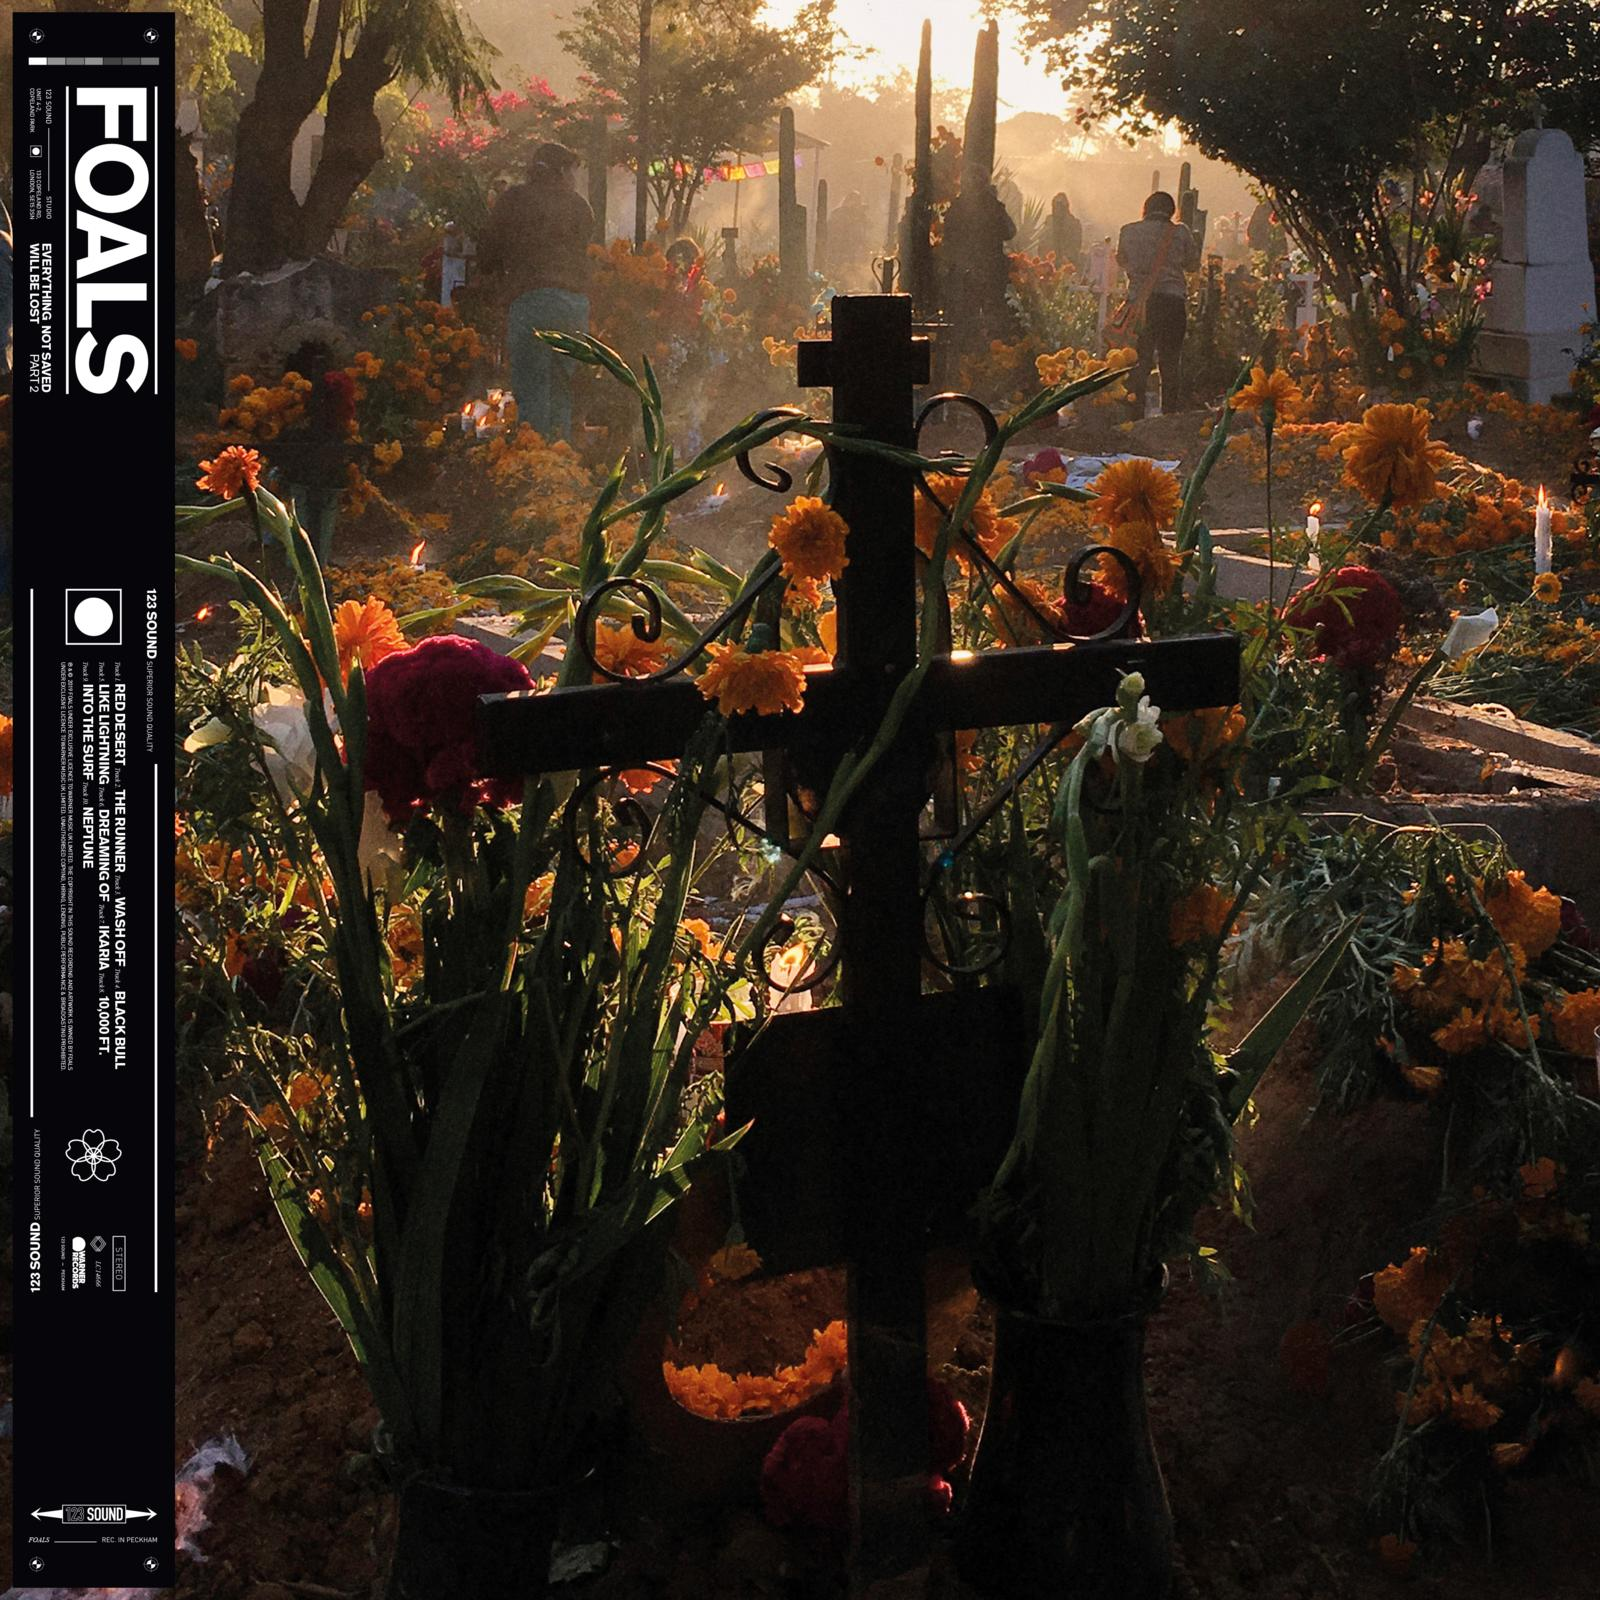 Foals - Everything Not Saved Will Be Lost Part 2 [LP]